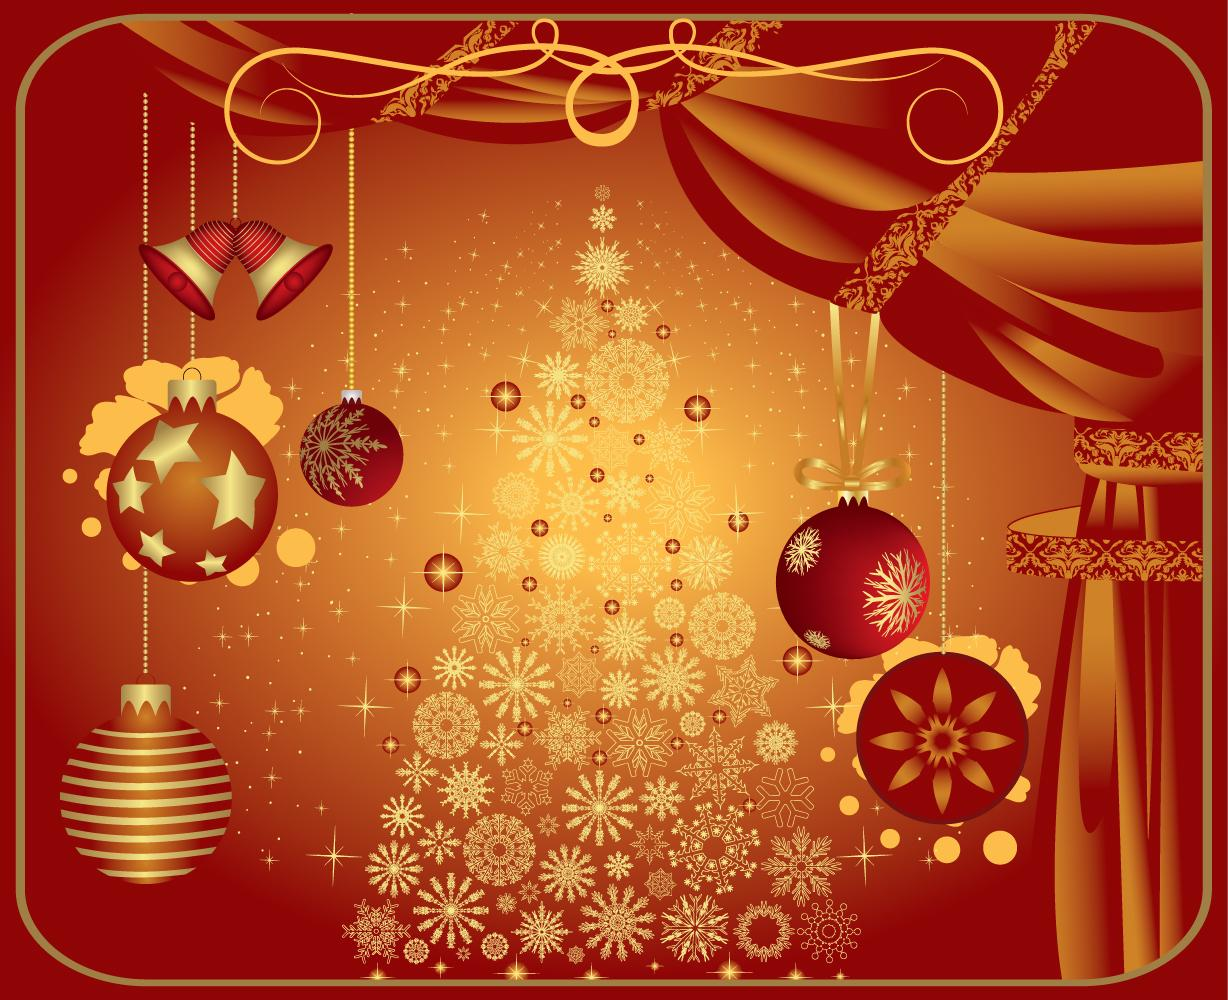 Holiday Background Or Greeting Card: December 2011